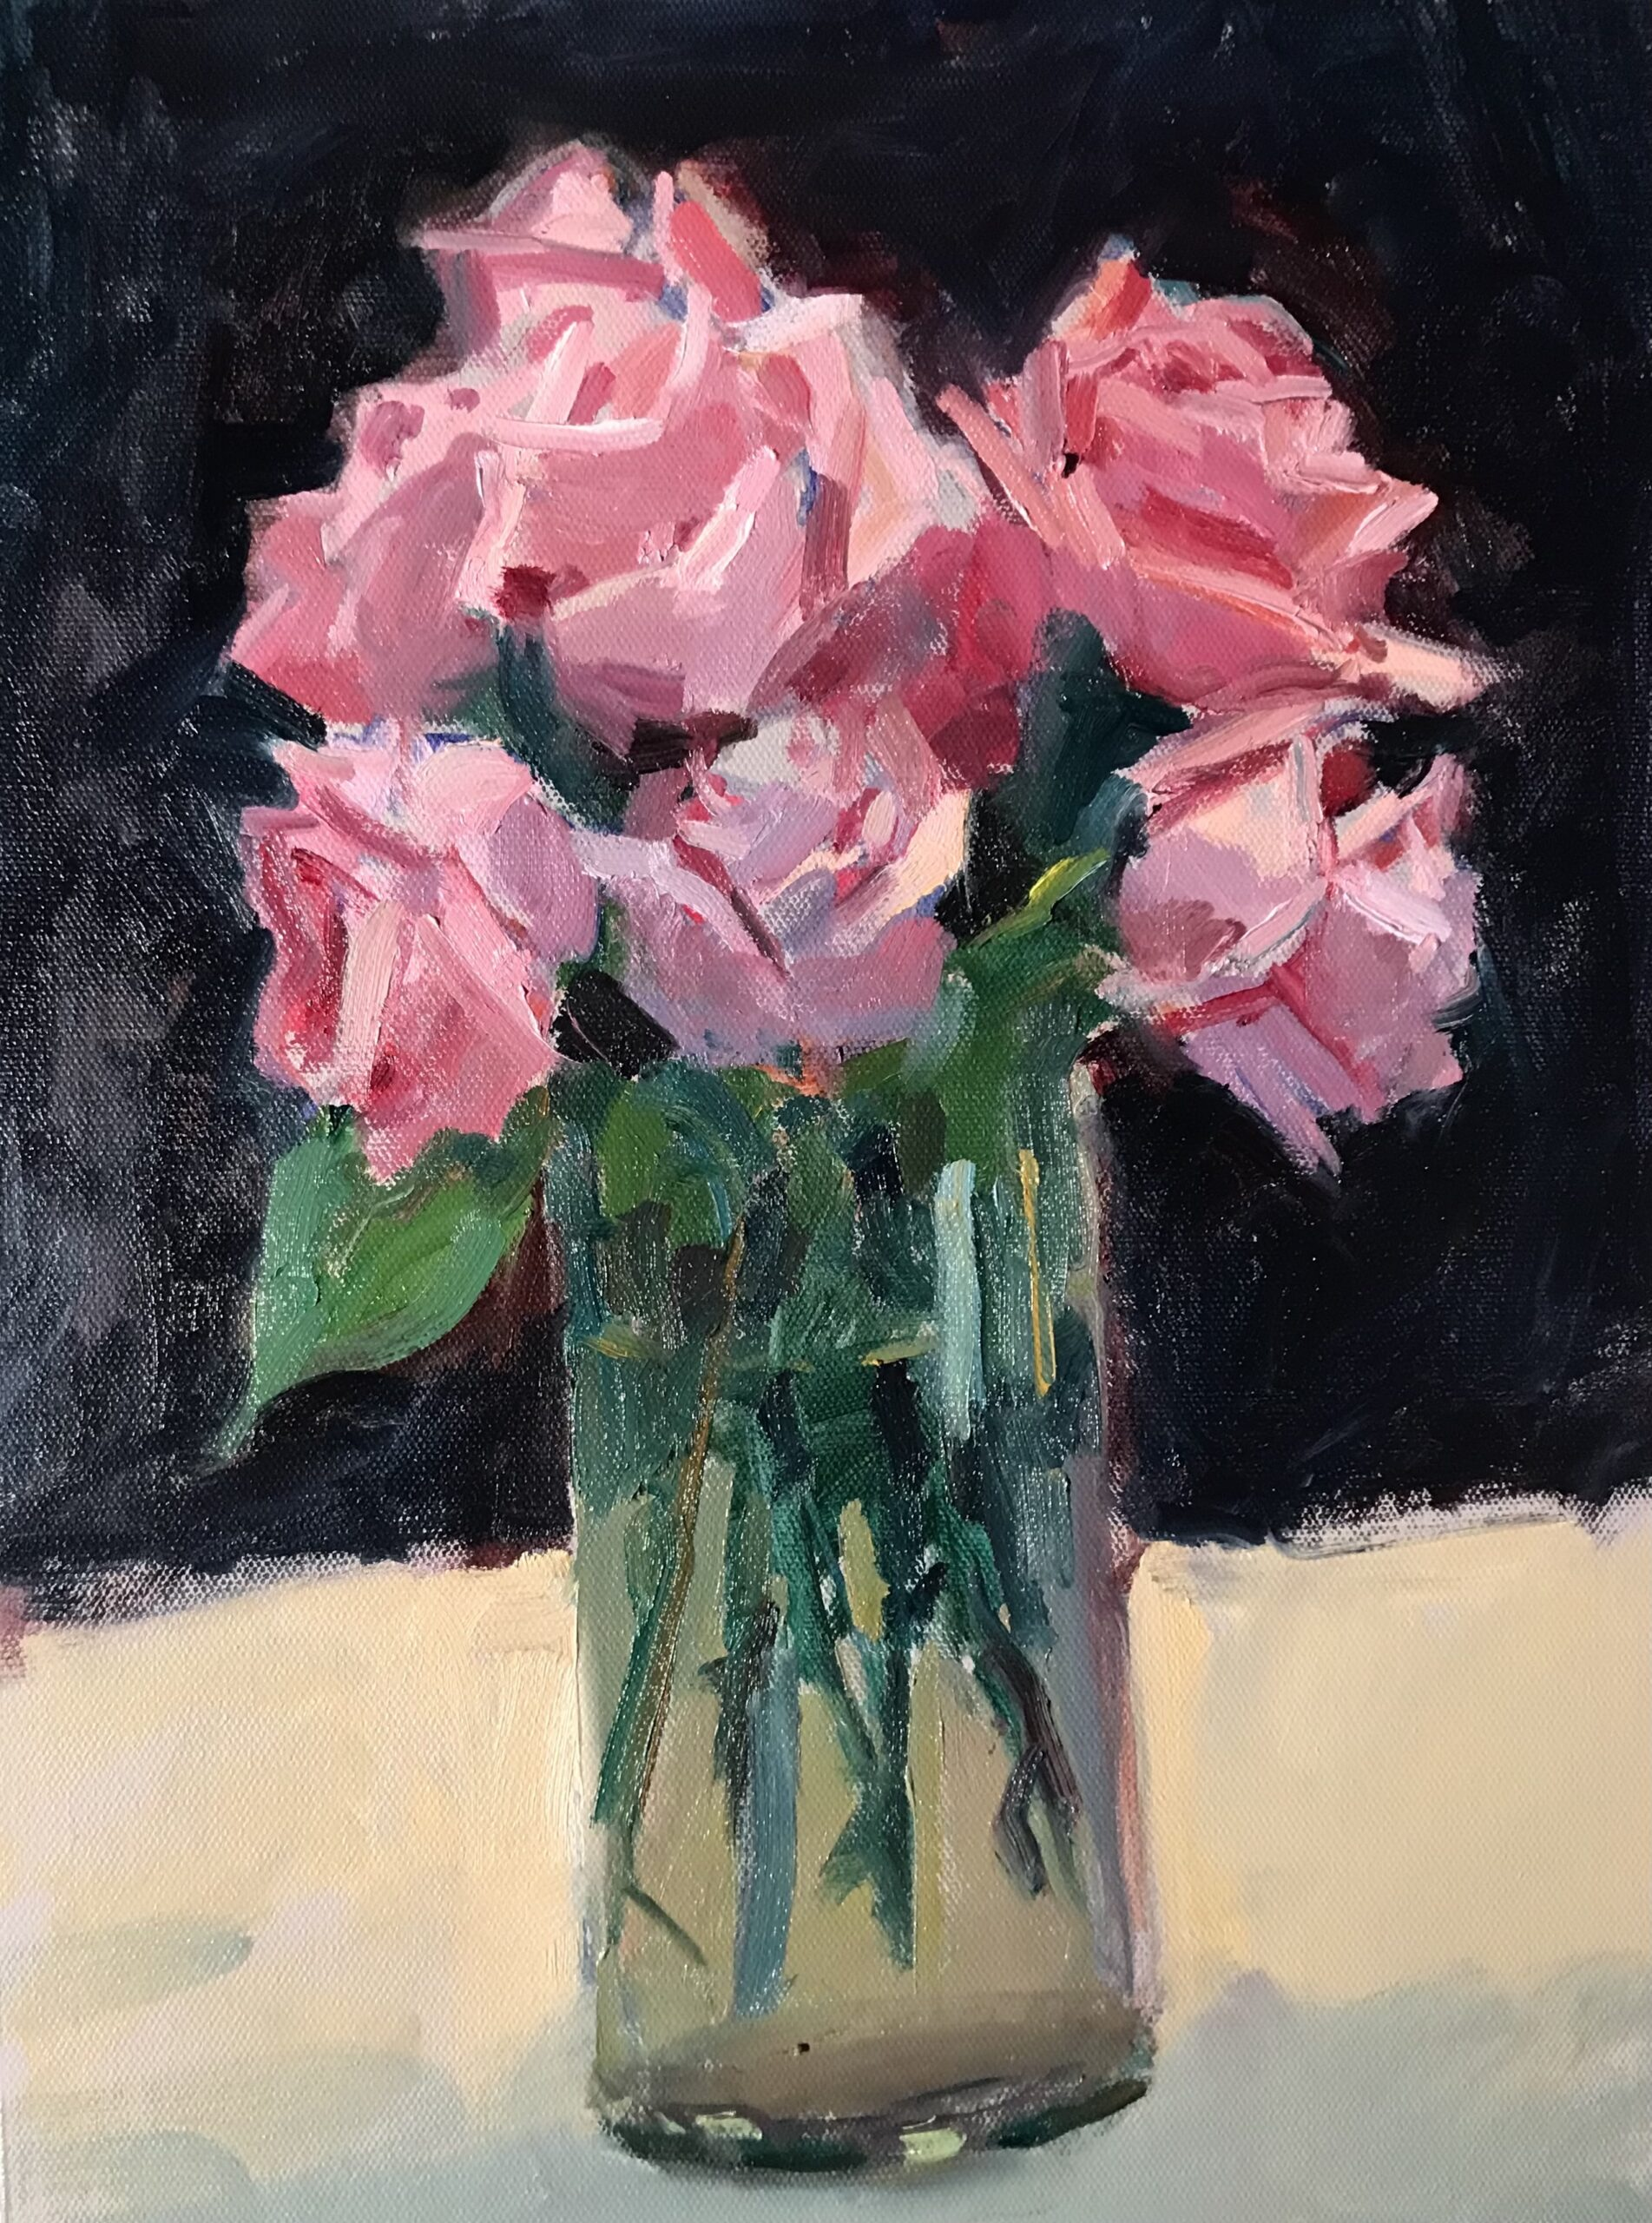 Roses in July, Oil on Canvas on Panel, 16 x 12 Inches by Susan Grisell $325